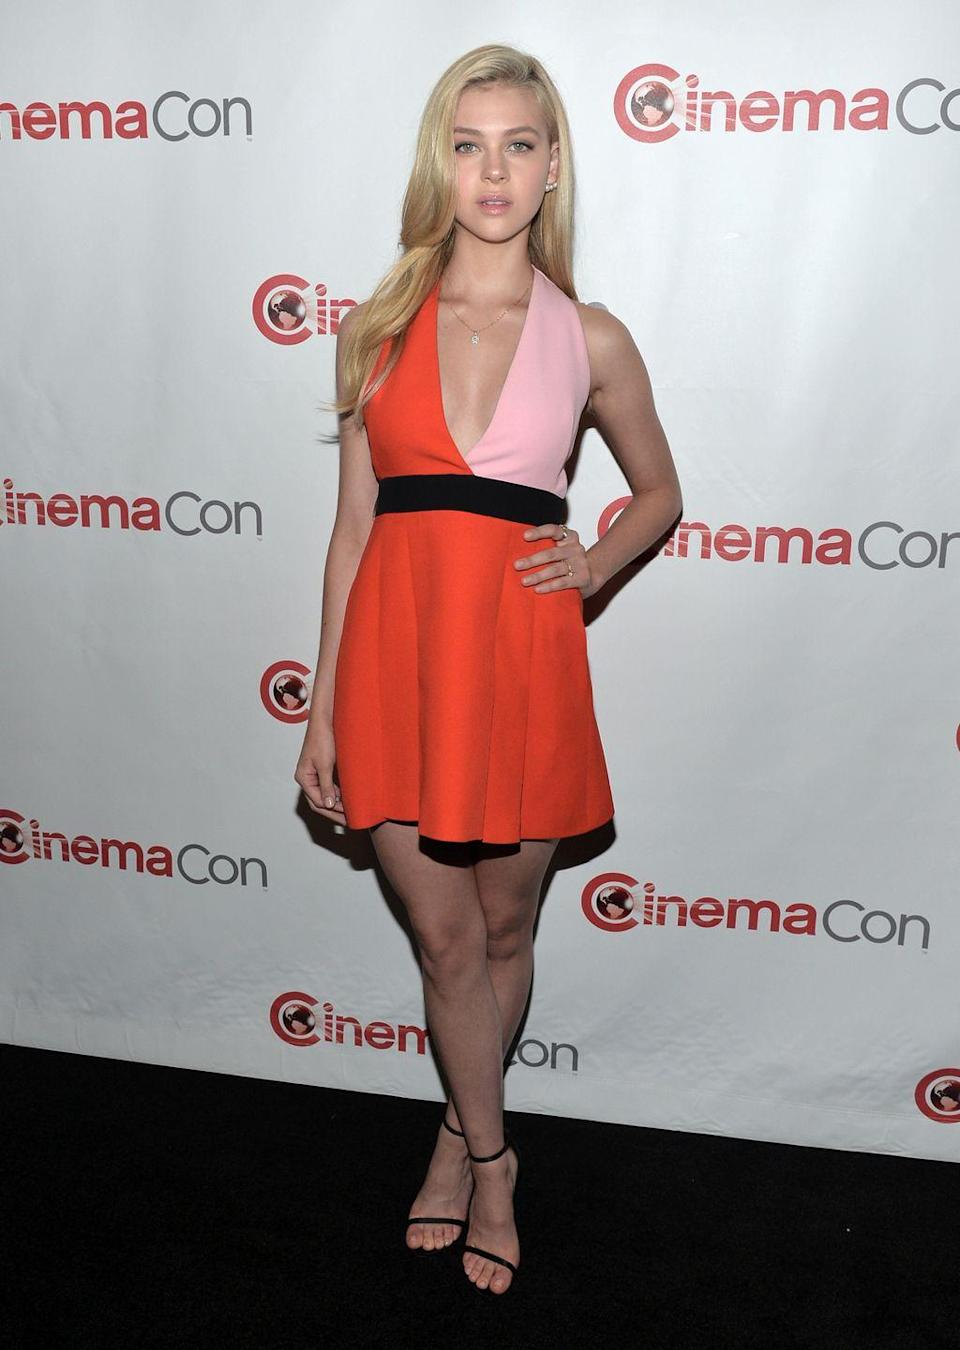 <p>For the red carpet the actor wore an orange and light pink panelled halterneck top with a black belt detail around the waist. </p>